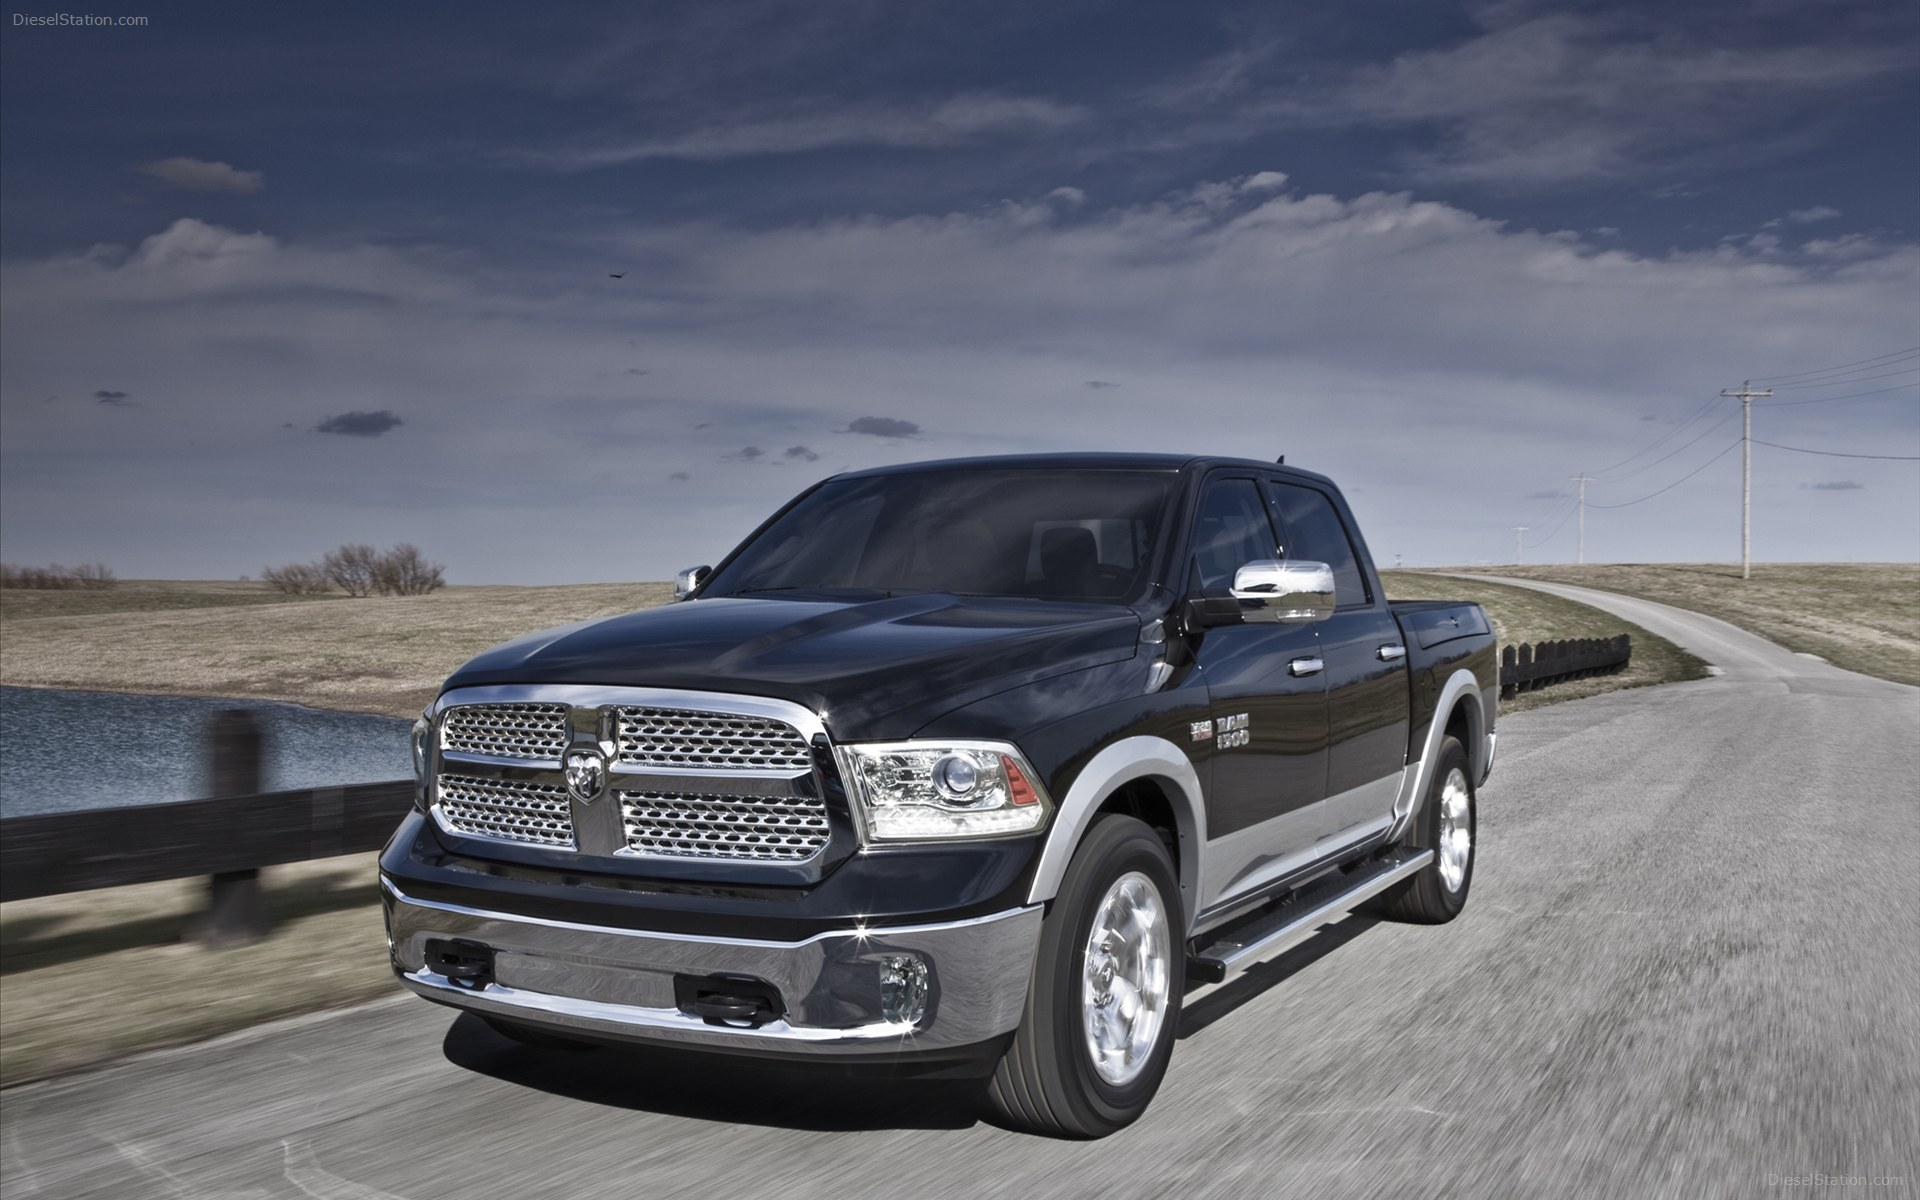 Dodge ram photo - 3